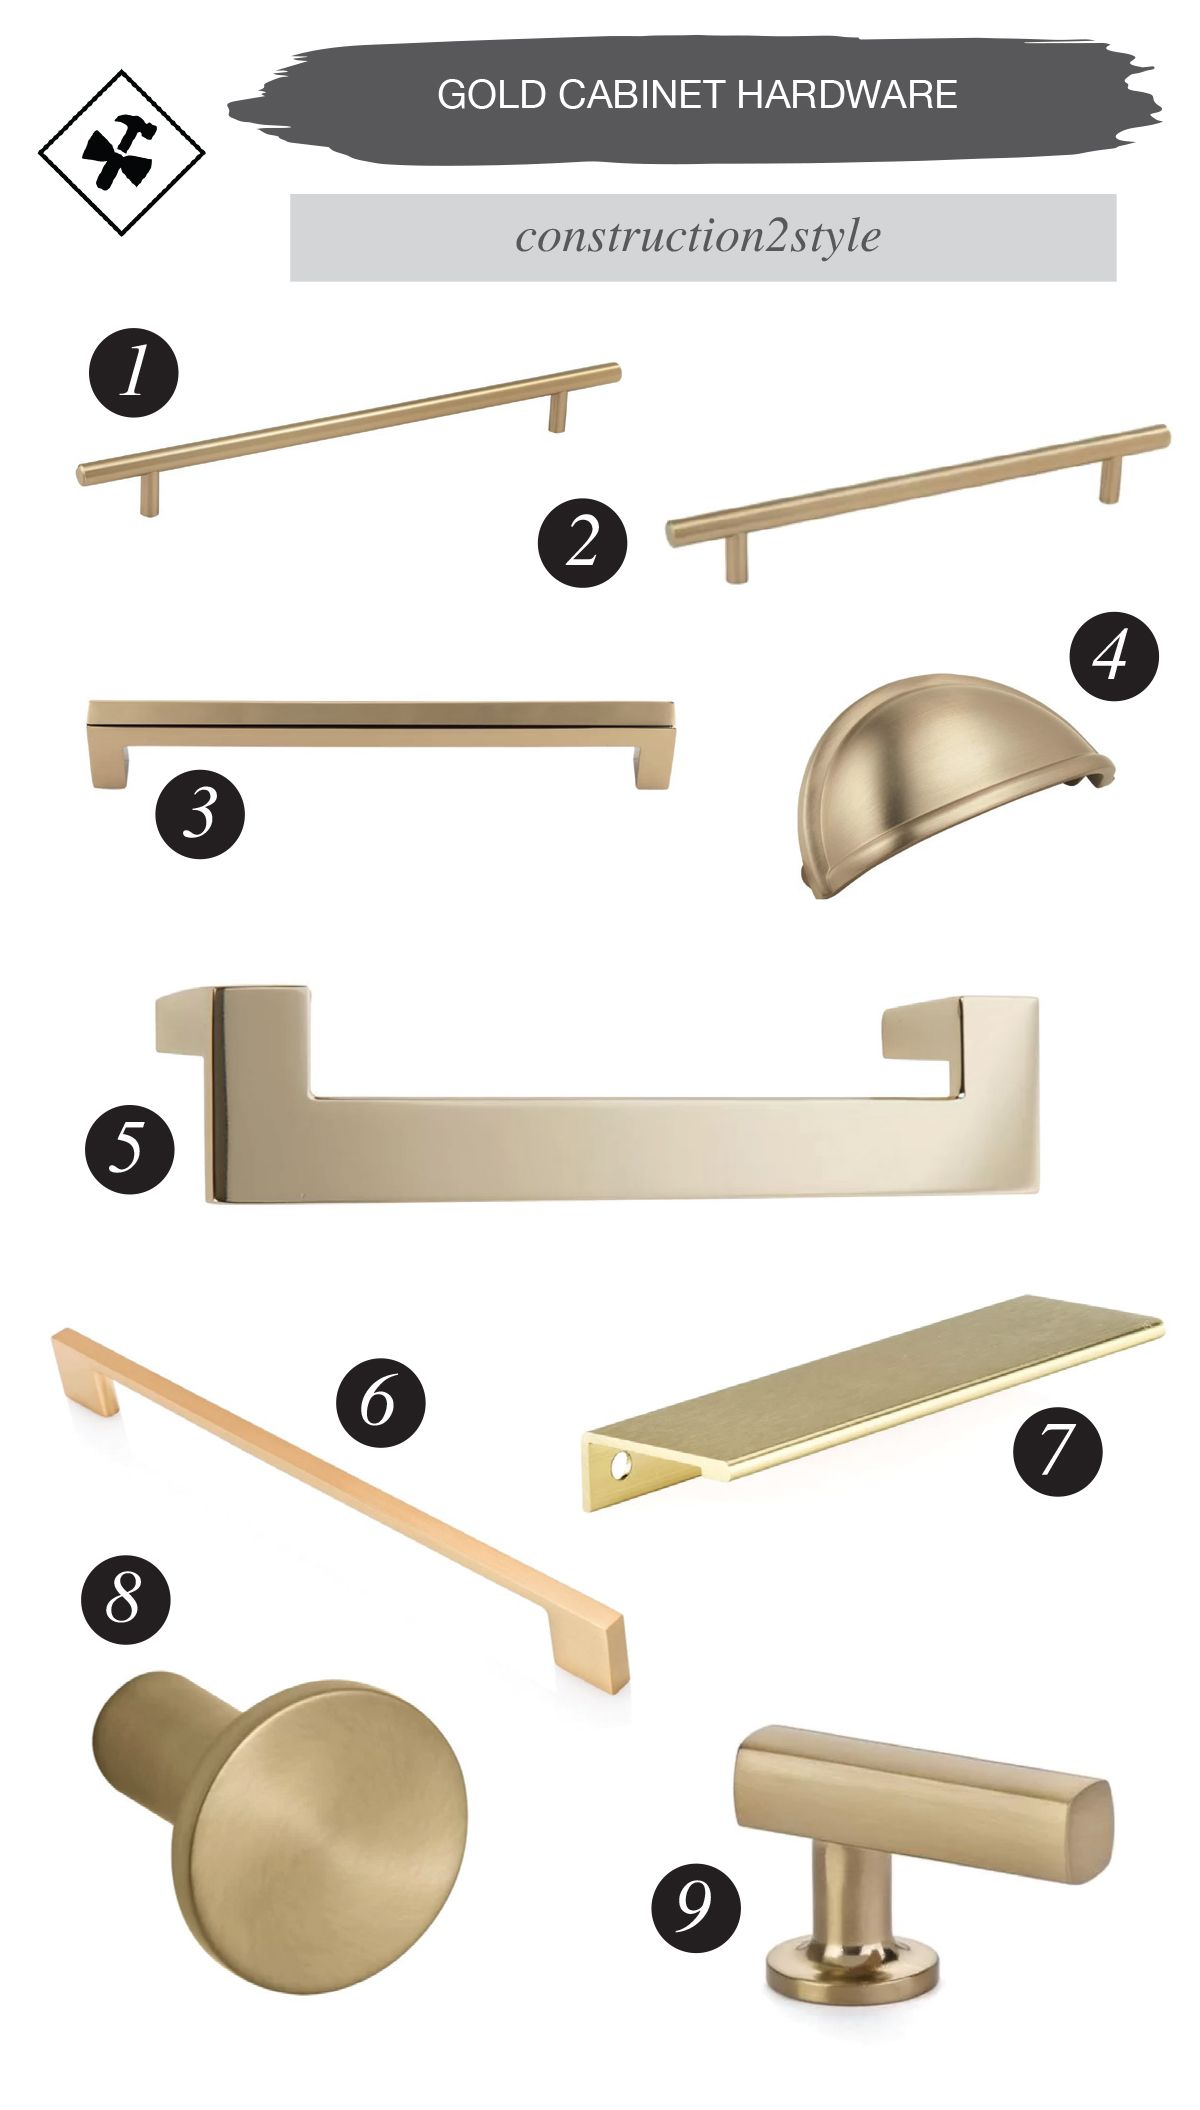 Top Gold Cabinet Hardware Options Cabinetry Hardware Gold